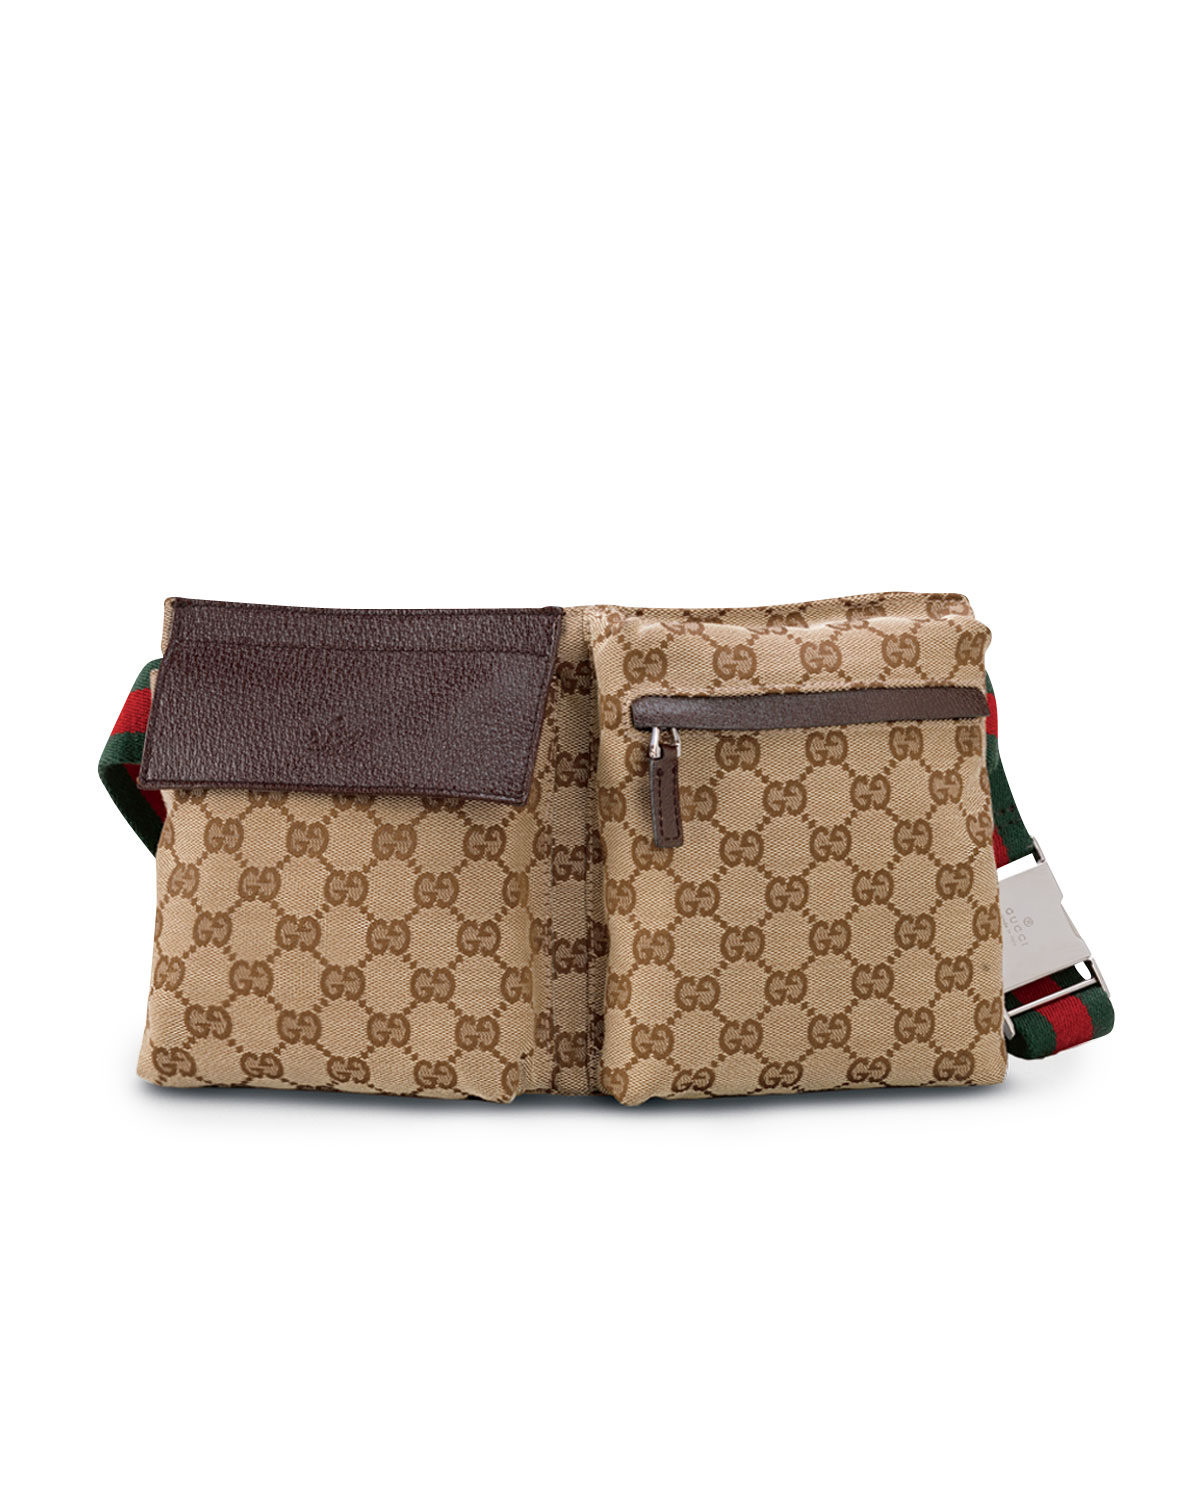 0f24ebdeda1 Gucci GG Belt Bag